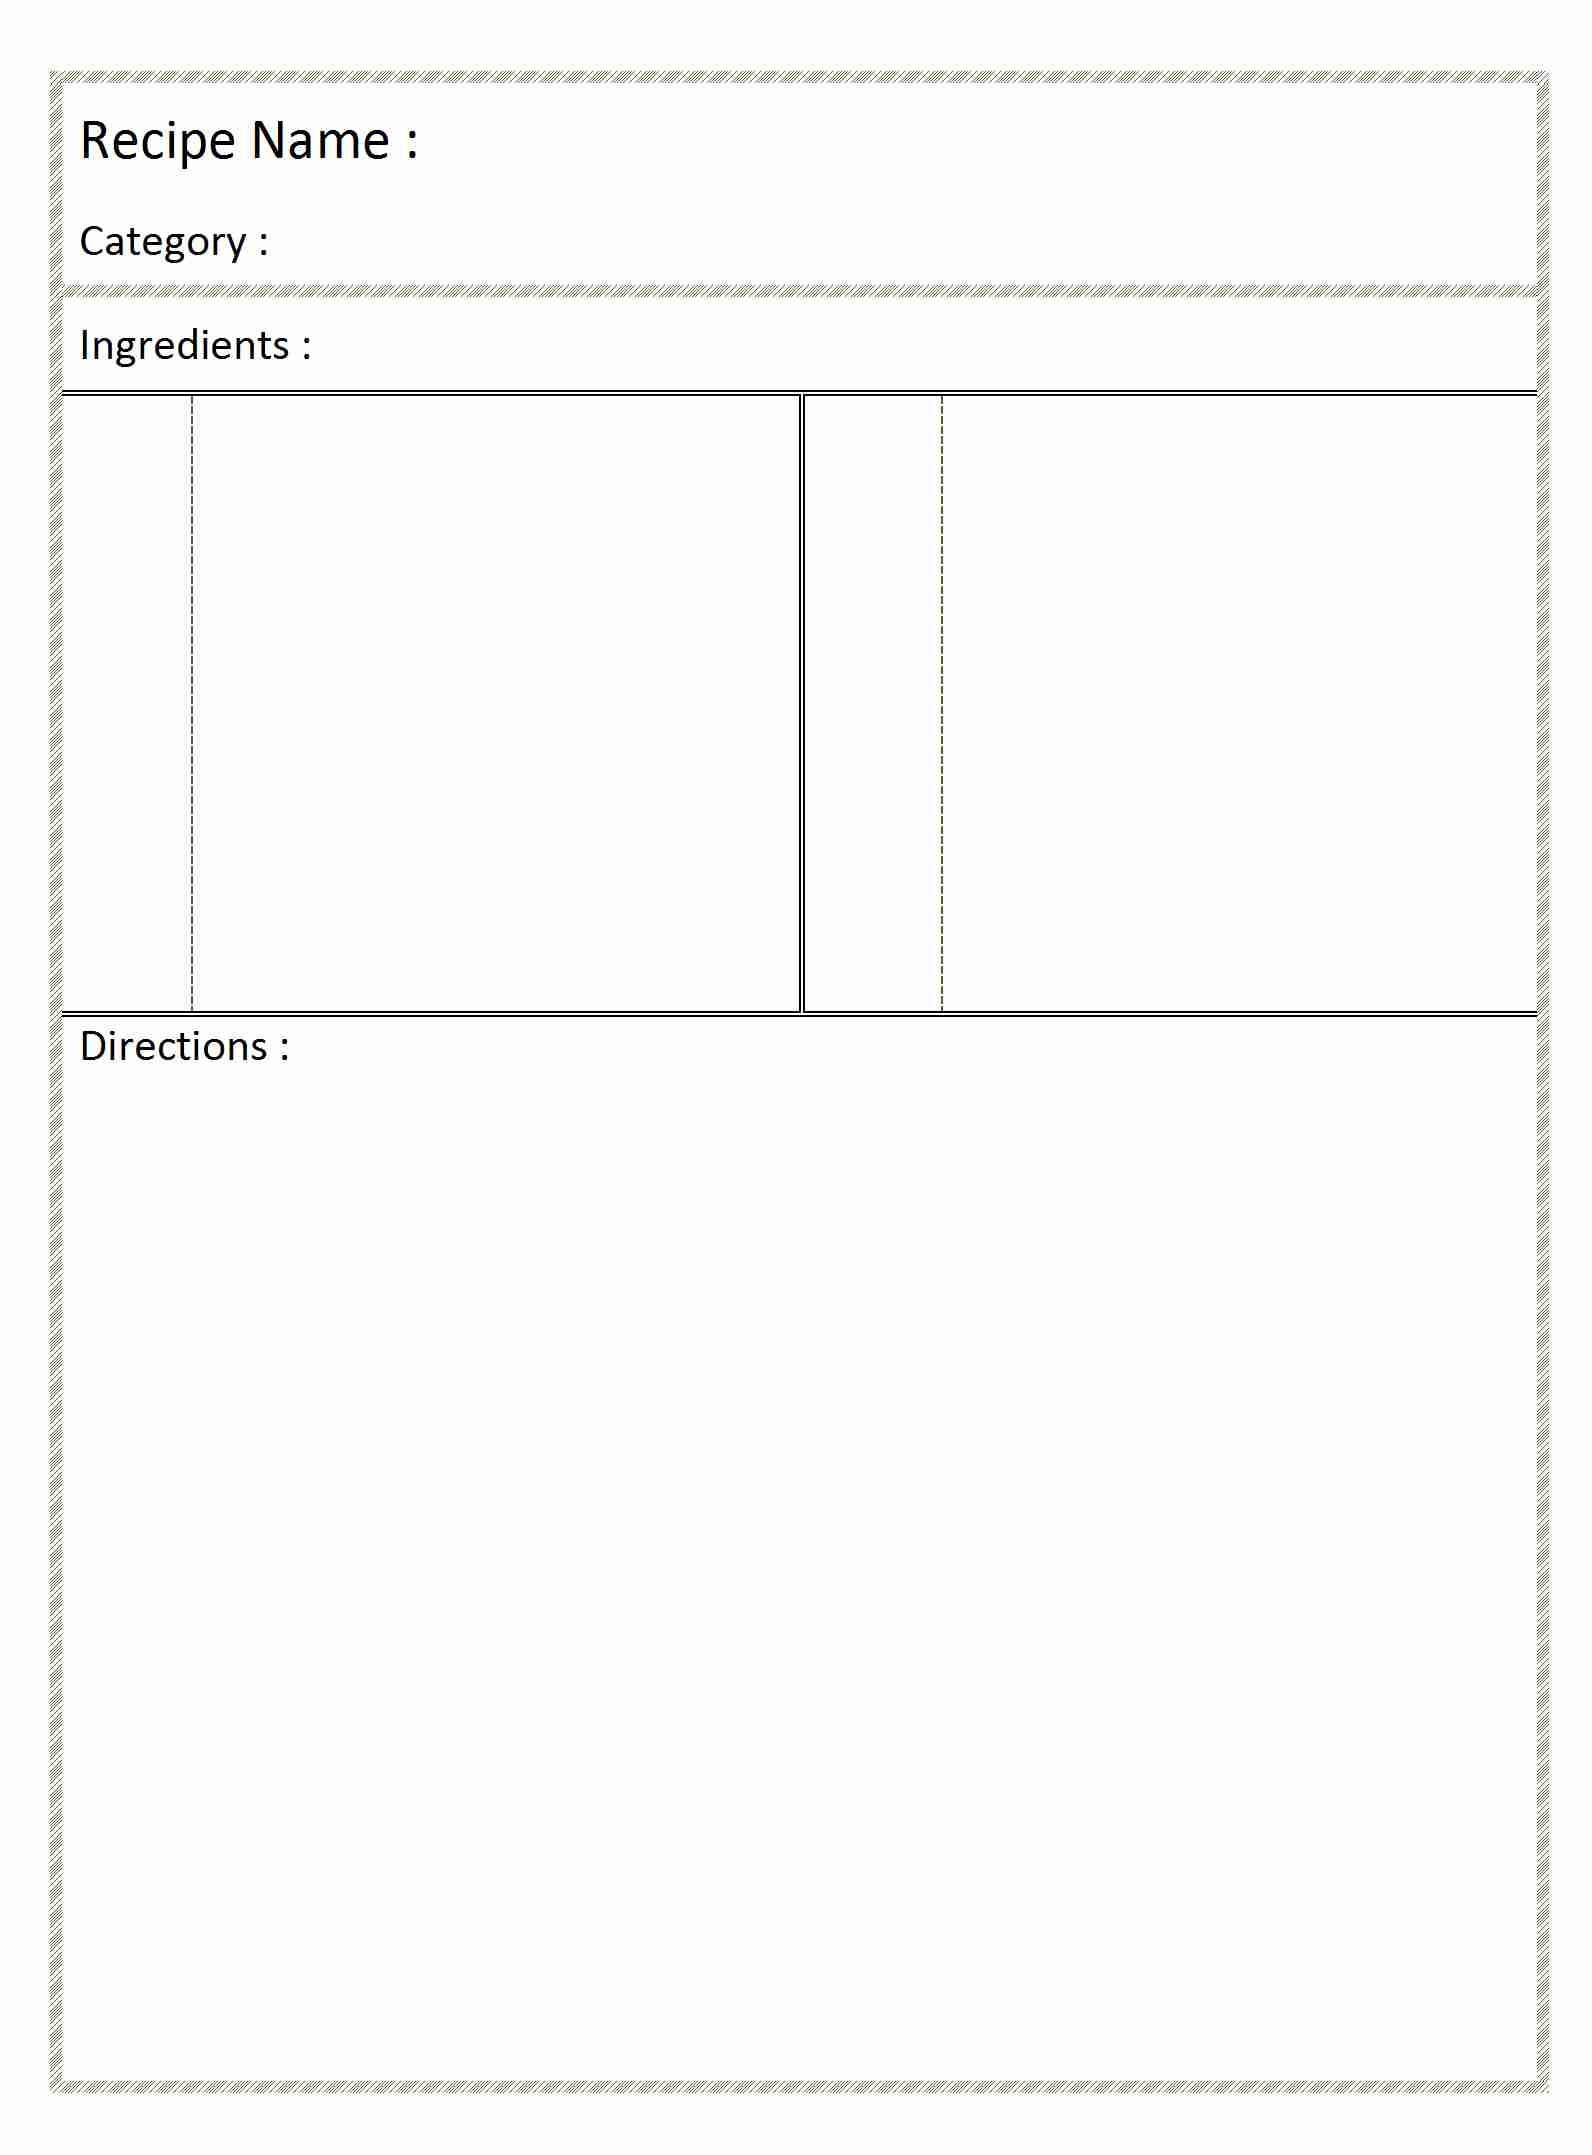 Blank Recipe Card – Free Recipe Card Templates for Microsoft Word